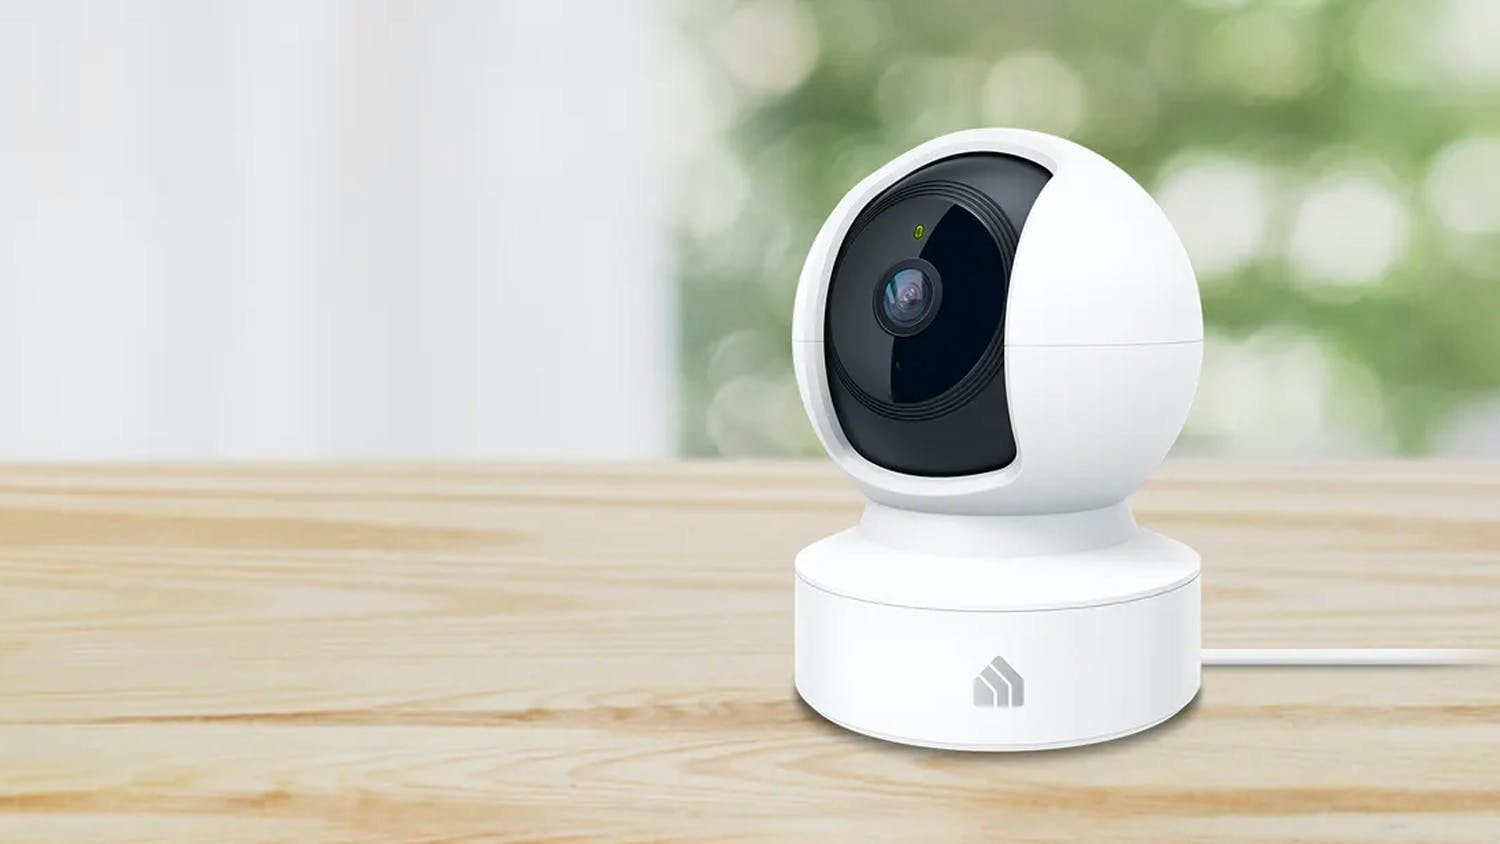 TP-Link Full HD WiFi Pan-Tilt Smart Home Camera